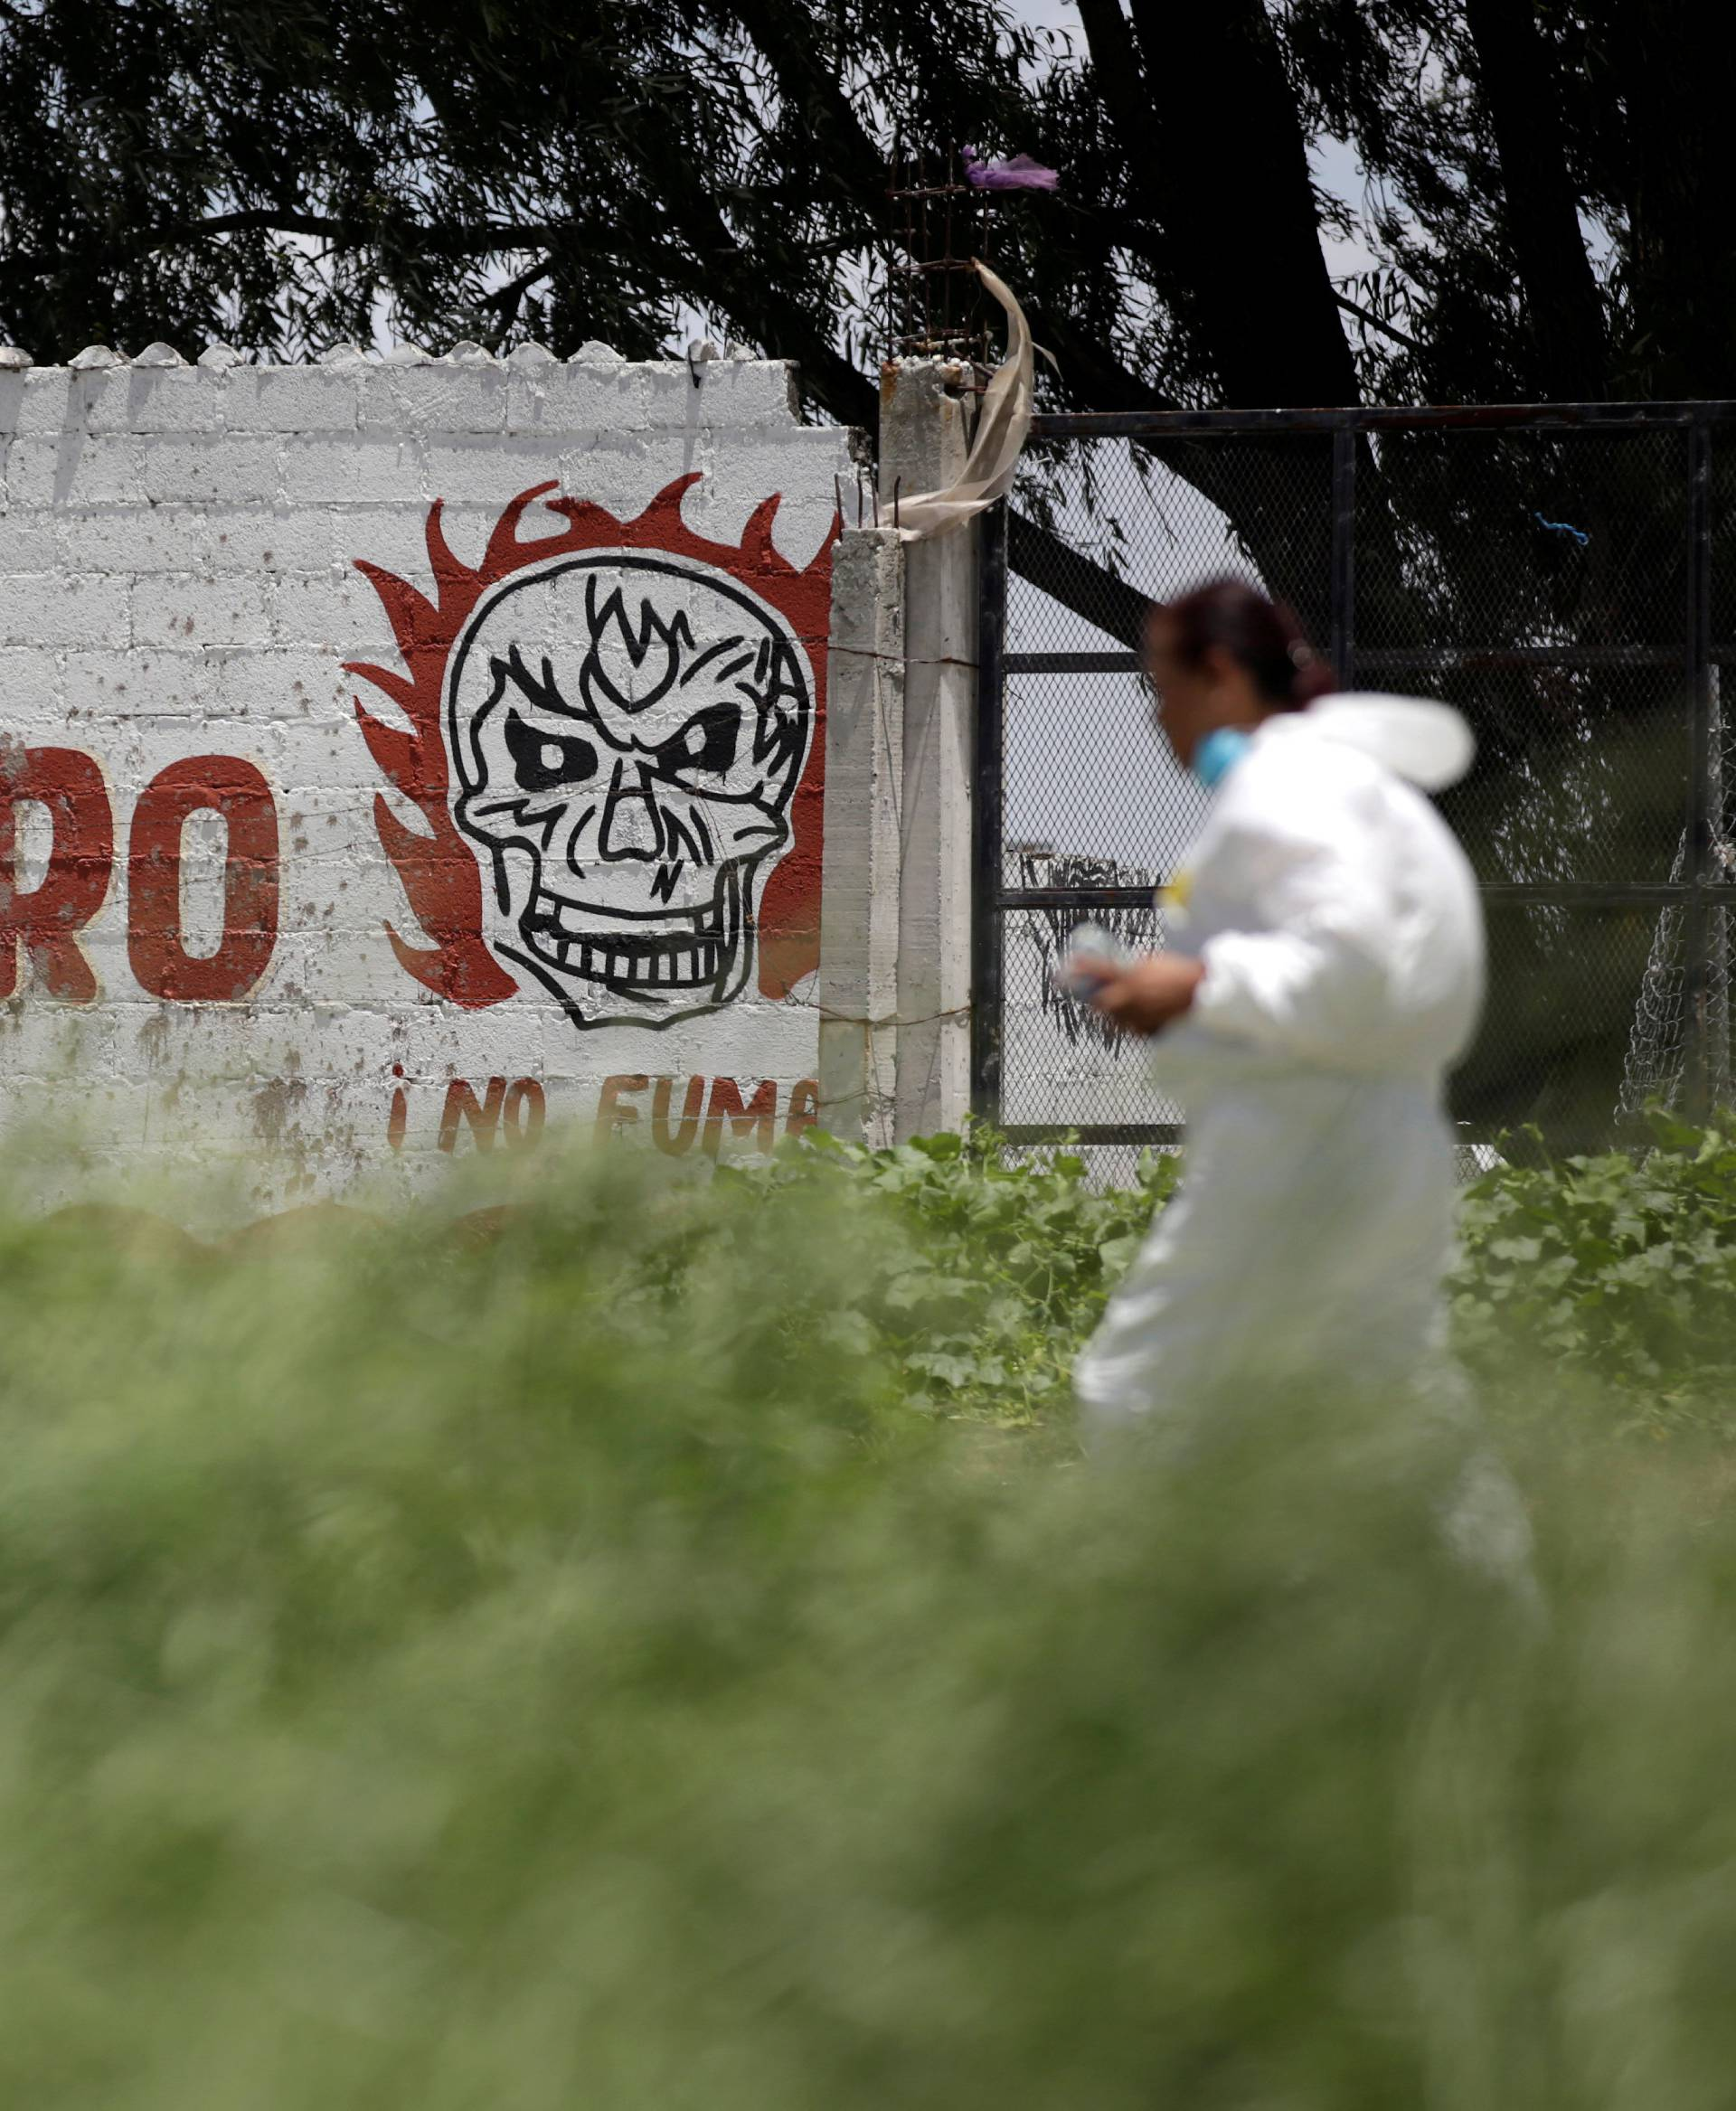 """A forensic technician walks by a wall reading """"Danger"""" while inspecting a site damaged due to fireworks explosions in the municipality of Tultepec"""